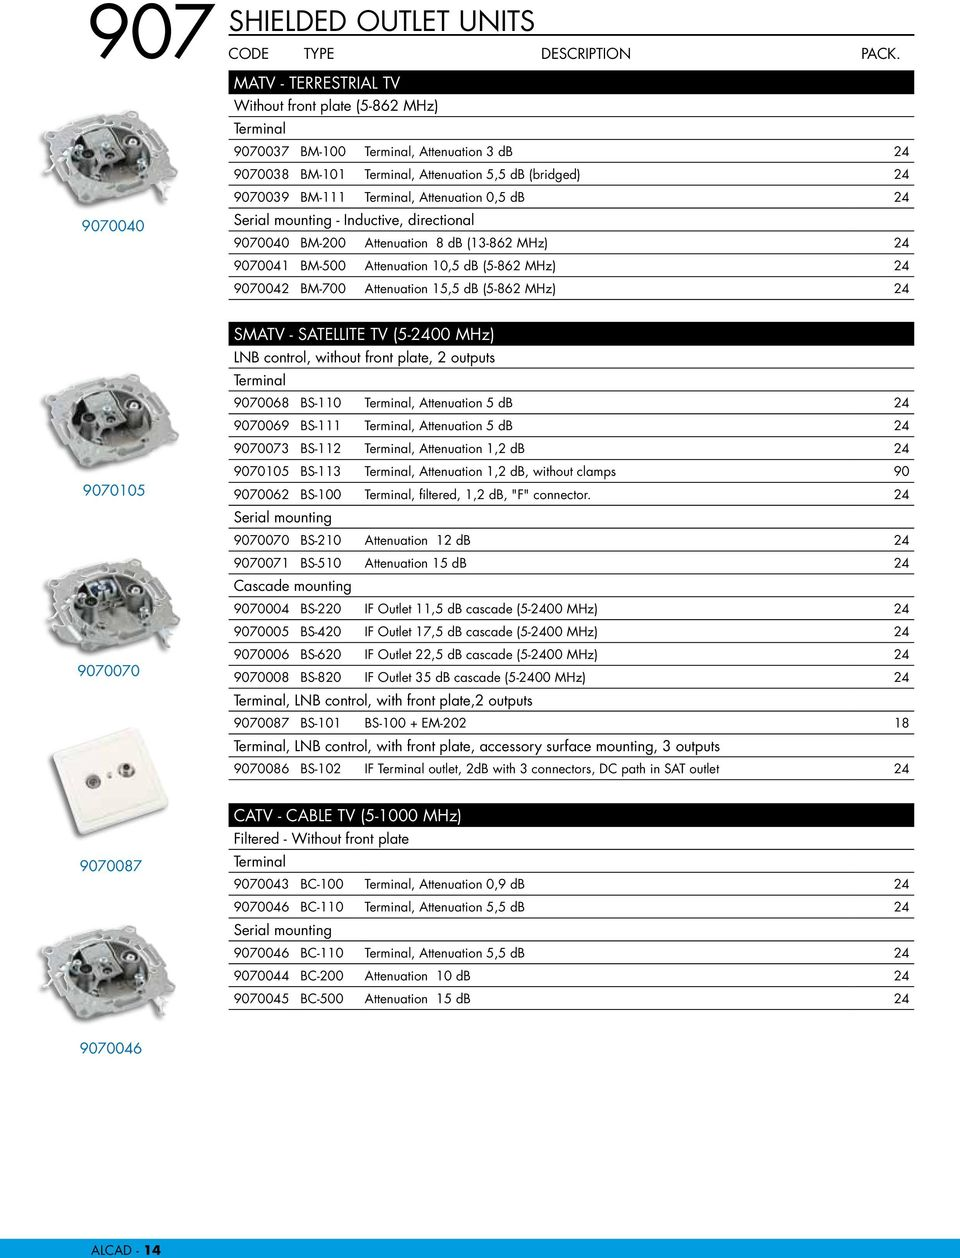 BM-700 Attenuation 15,5 db (5-862 MHz) 24 9070105 9070070 SMATV - SATELLITE TV (5-2400 MHz) LNB control, without front plate, 2 outputs Terminal 9070068 BS-110 Terminal, Attenuation 5 db 24 9070069